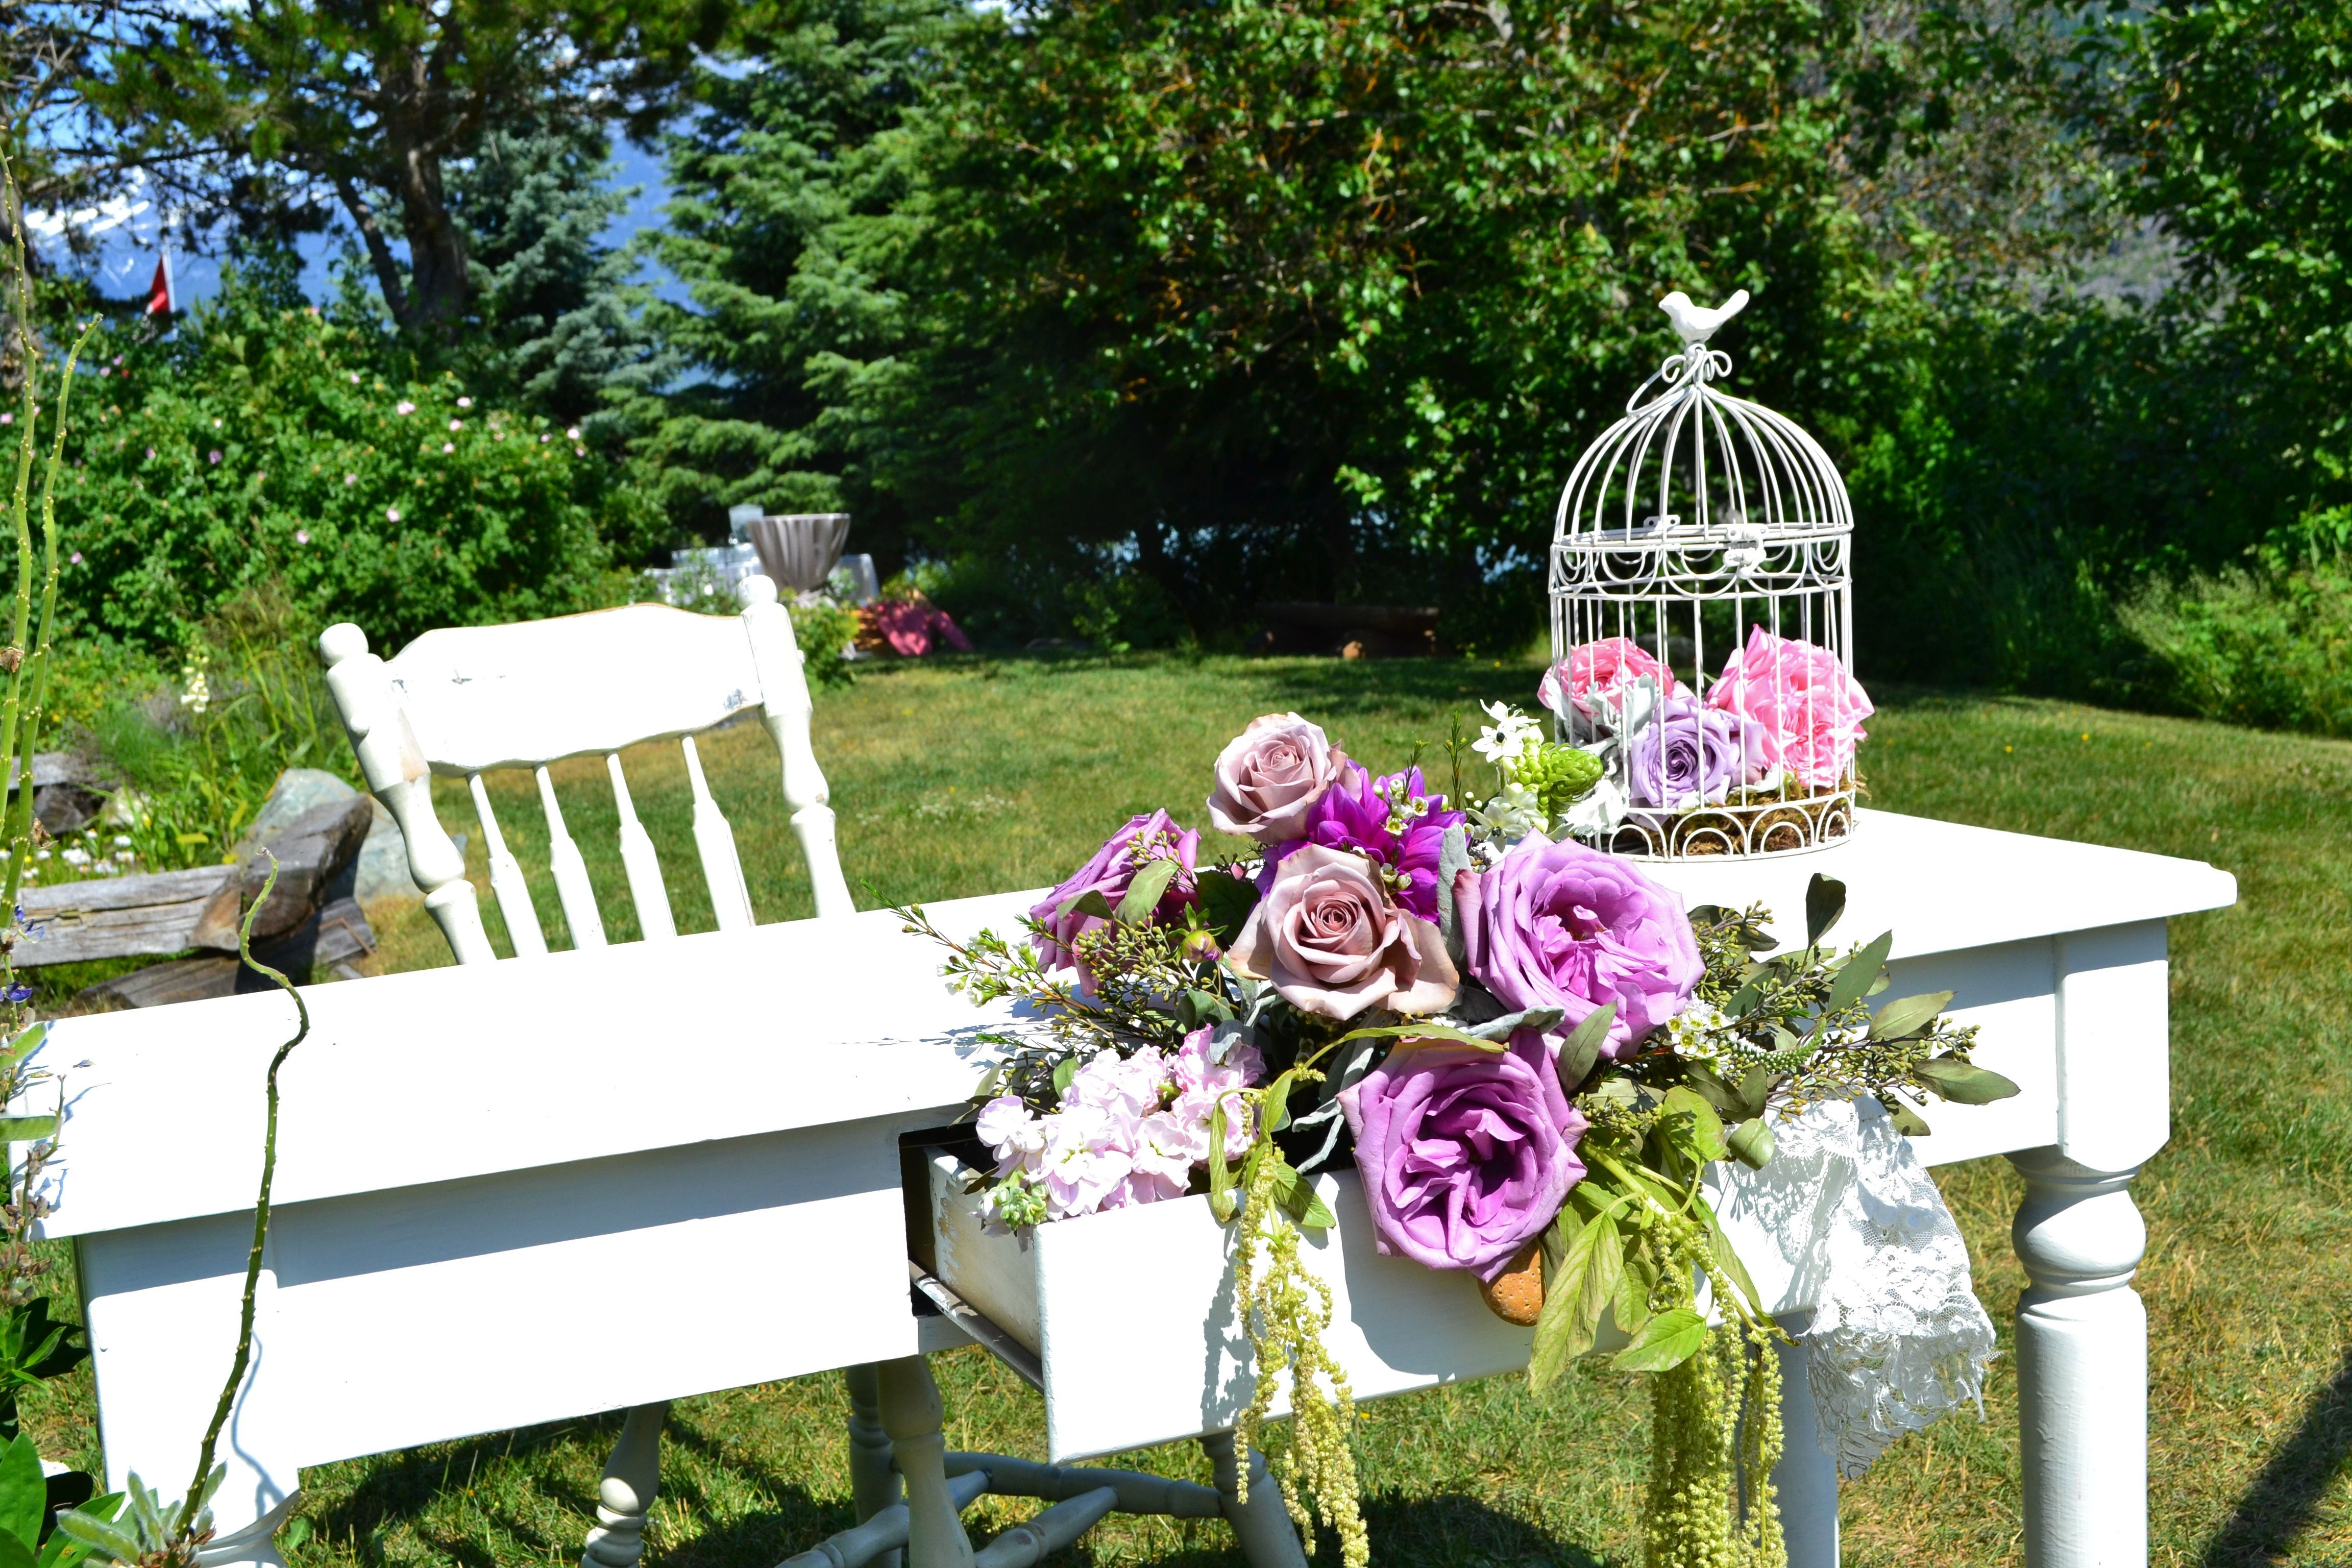 Dressing Table And Chair Rental With Smaller Birdcage Dressing Table With Chair Decor Table Decorations